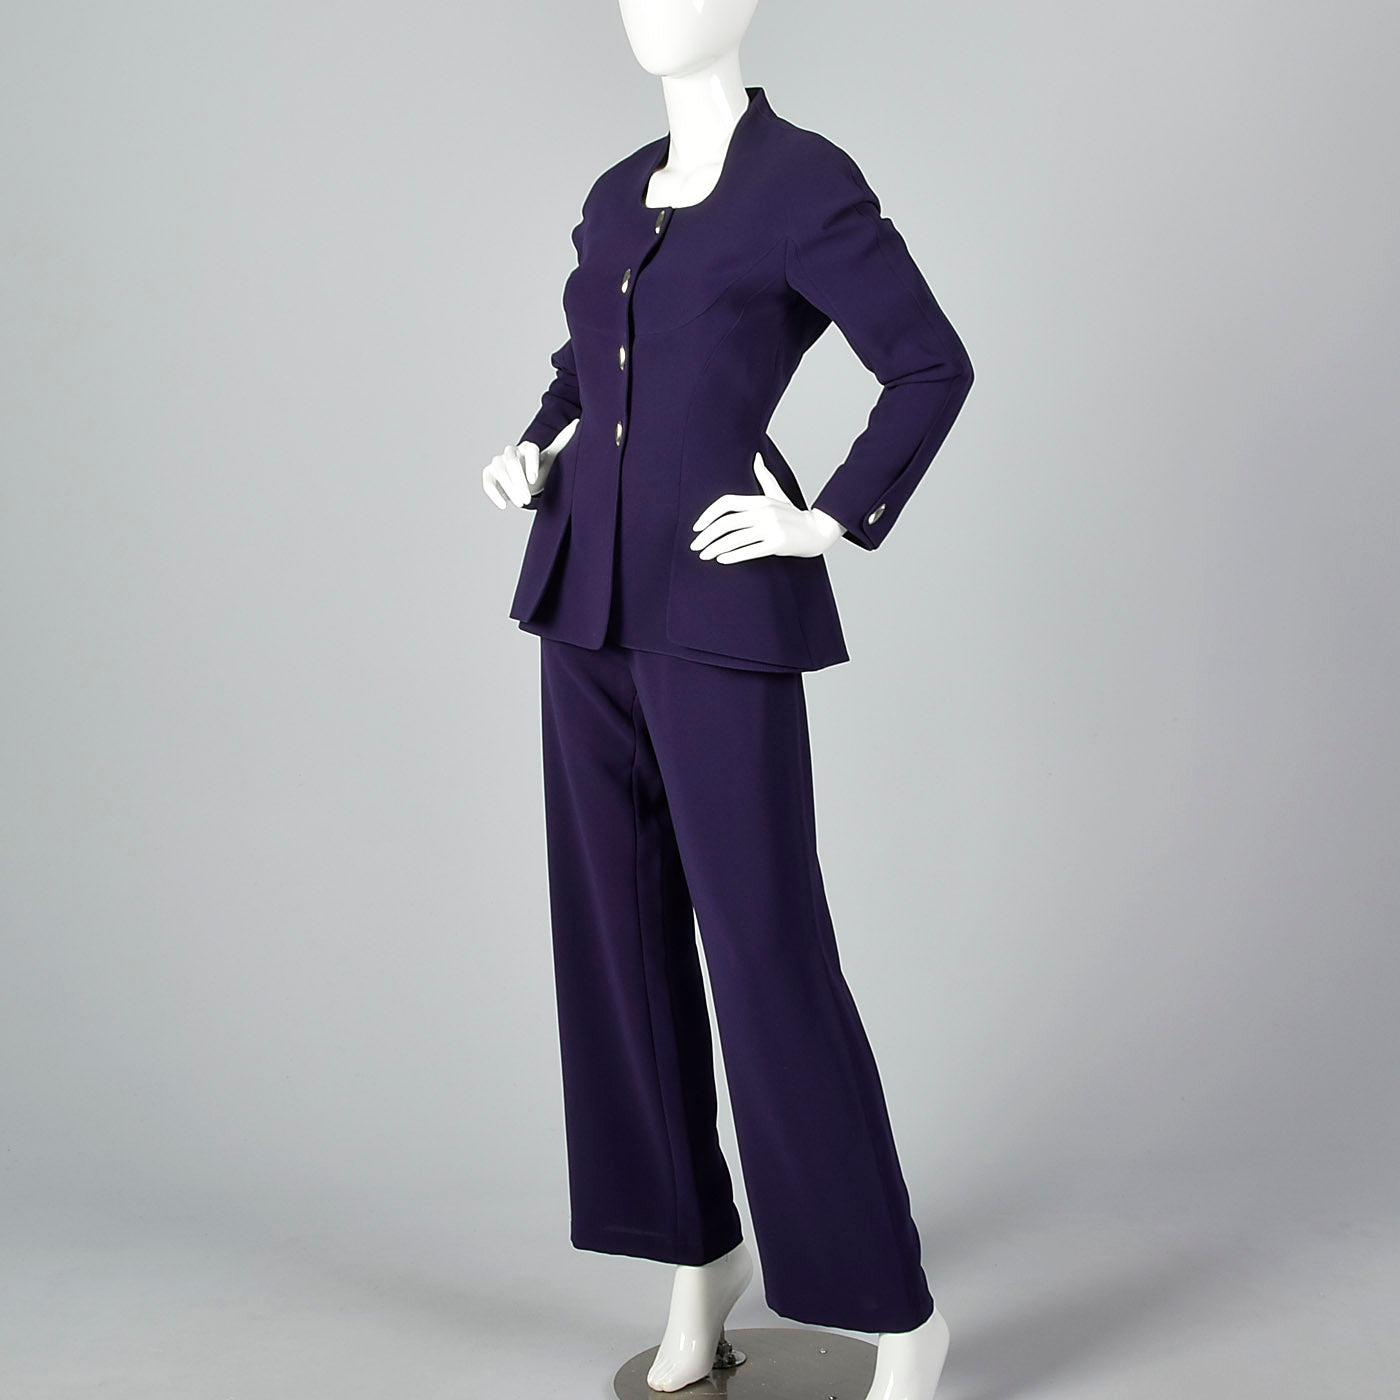 1980s Thierry Mugler Purple Pant Suit